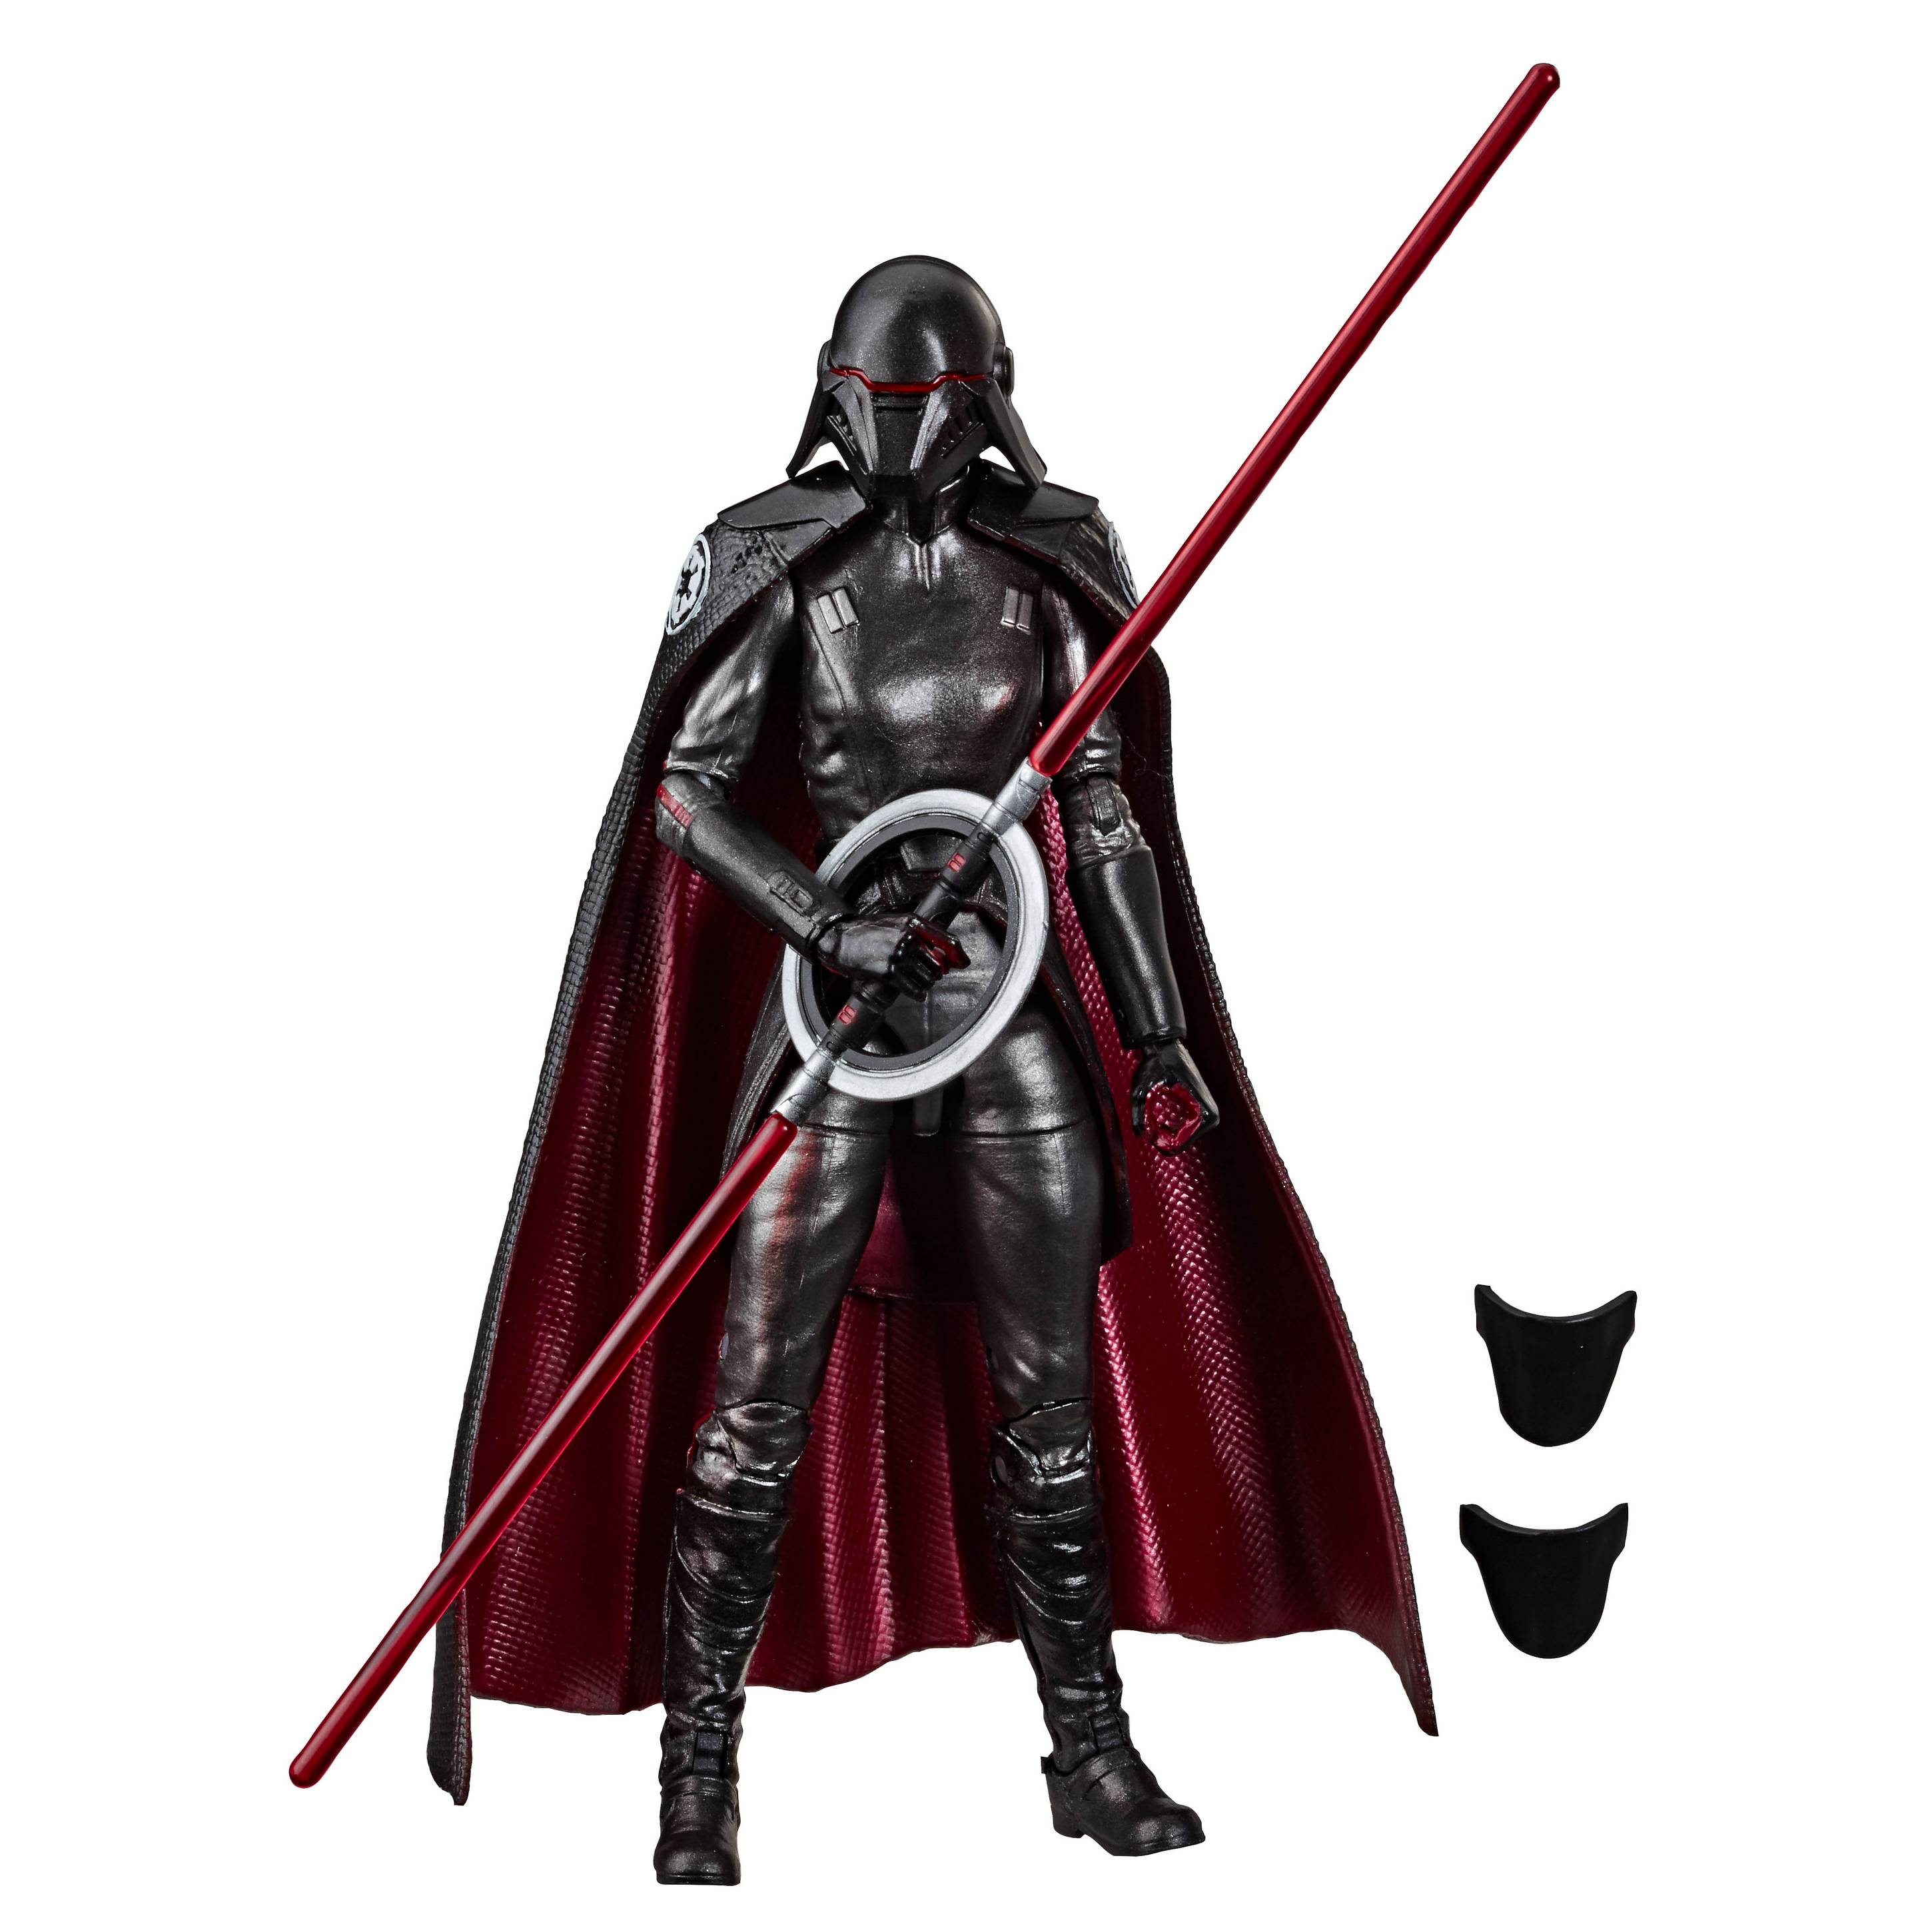 STAR-WARS-THE-BLACK-SERIES-6-INCH-SECOND-SISTER-INQUISITOR-CARBONIZED-COLLECTION-Figure-oop.jpg